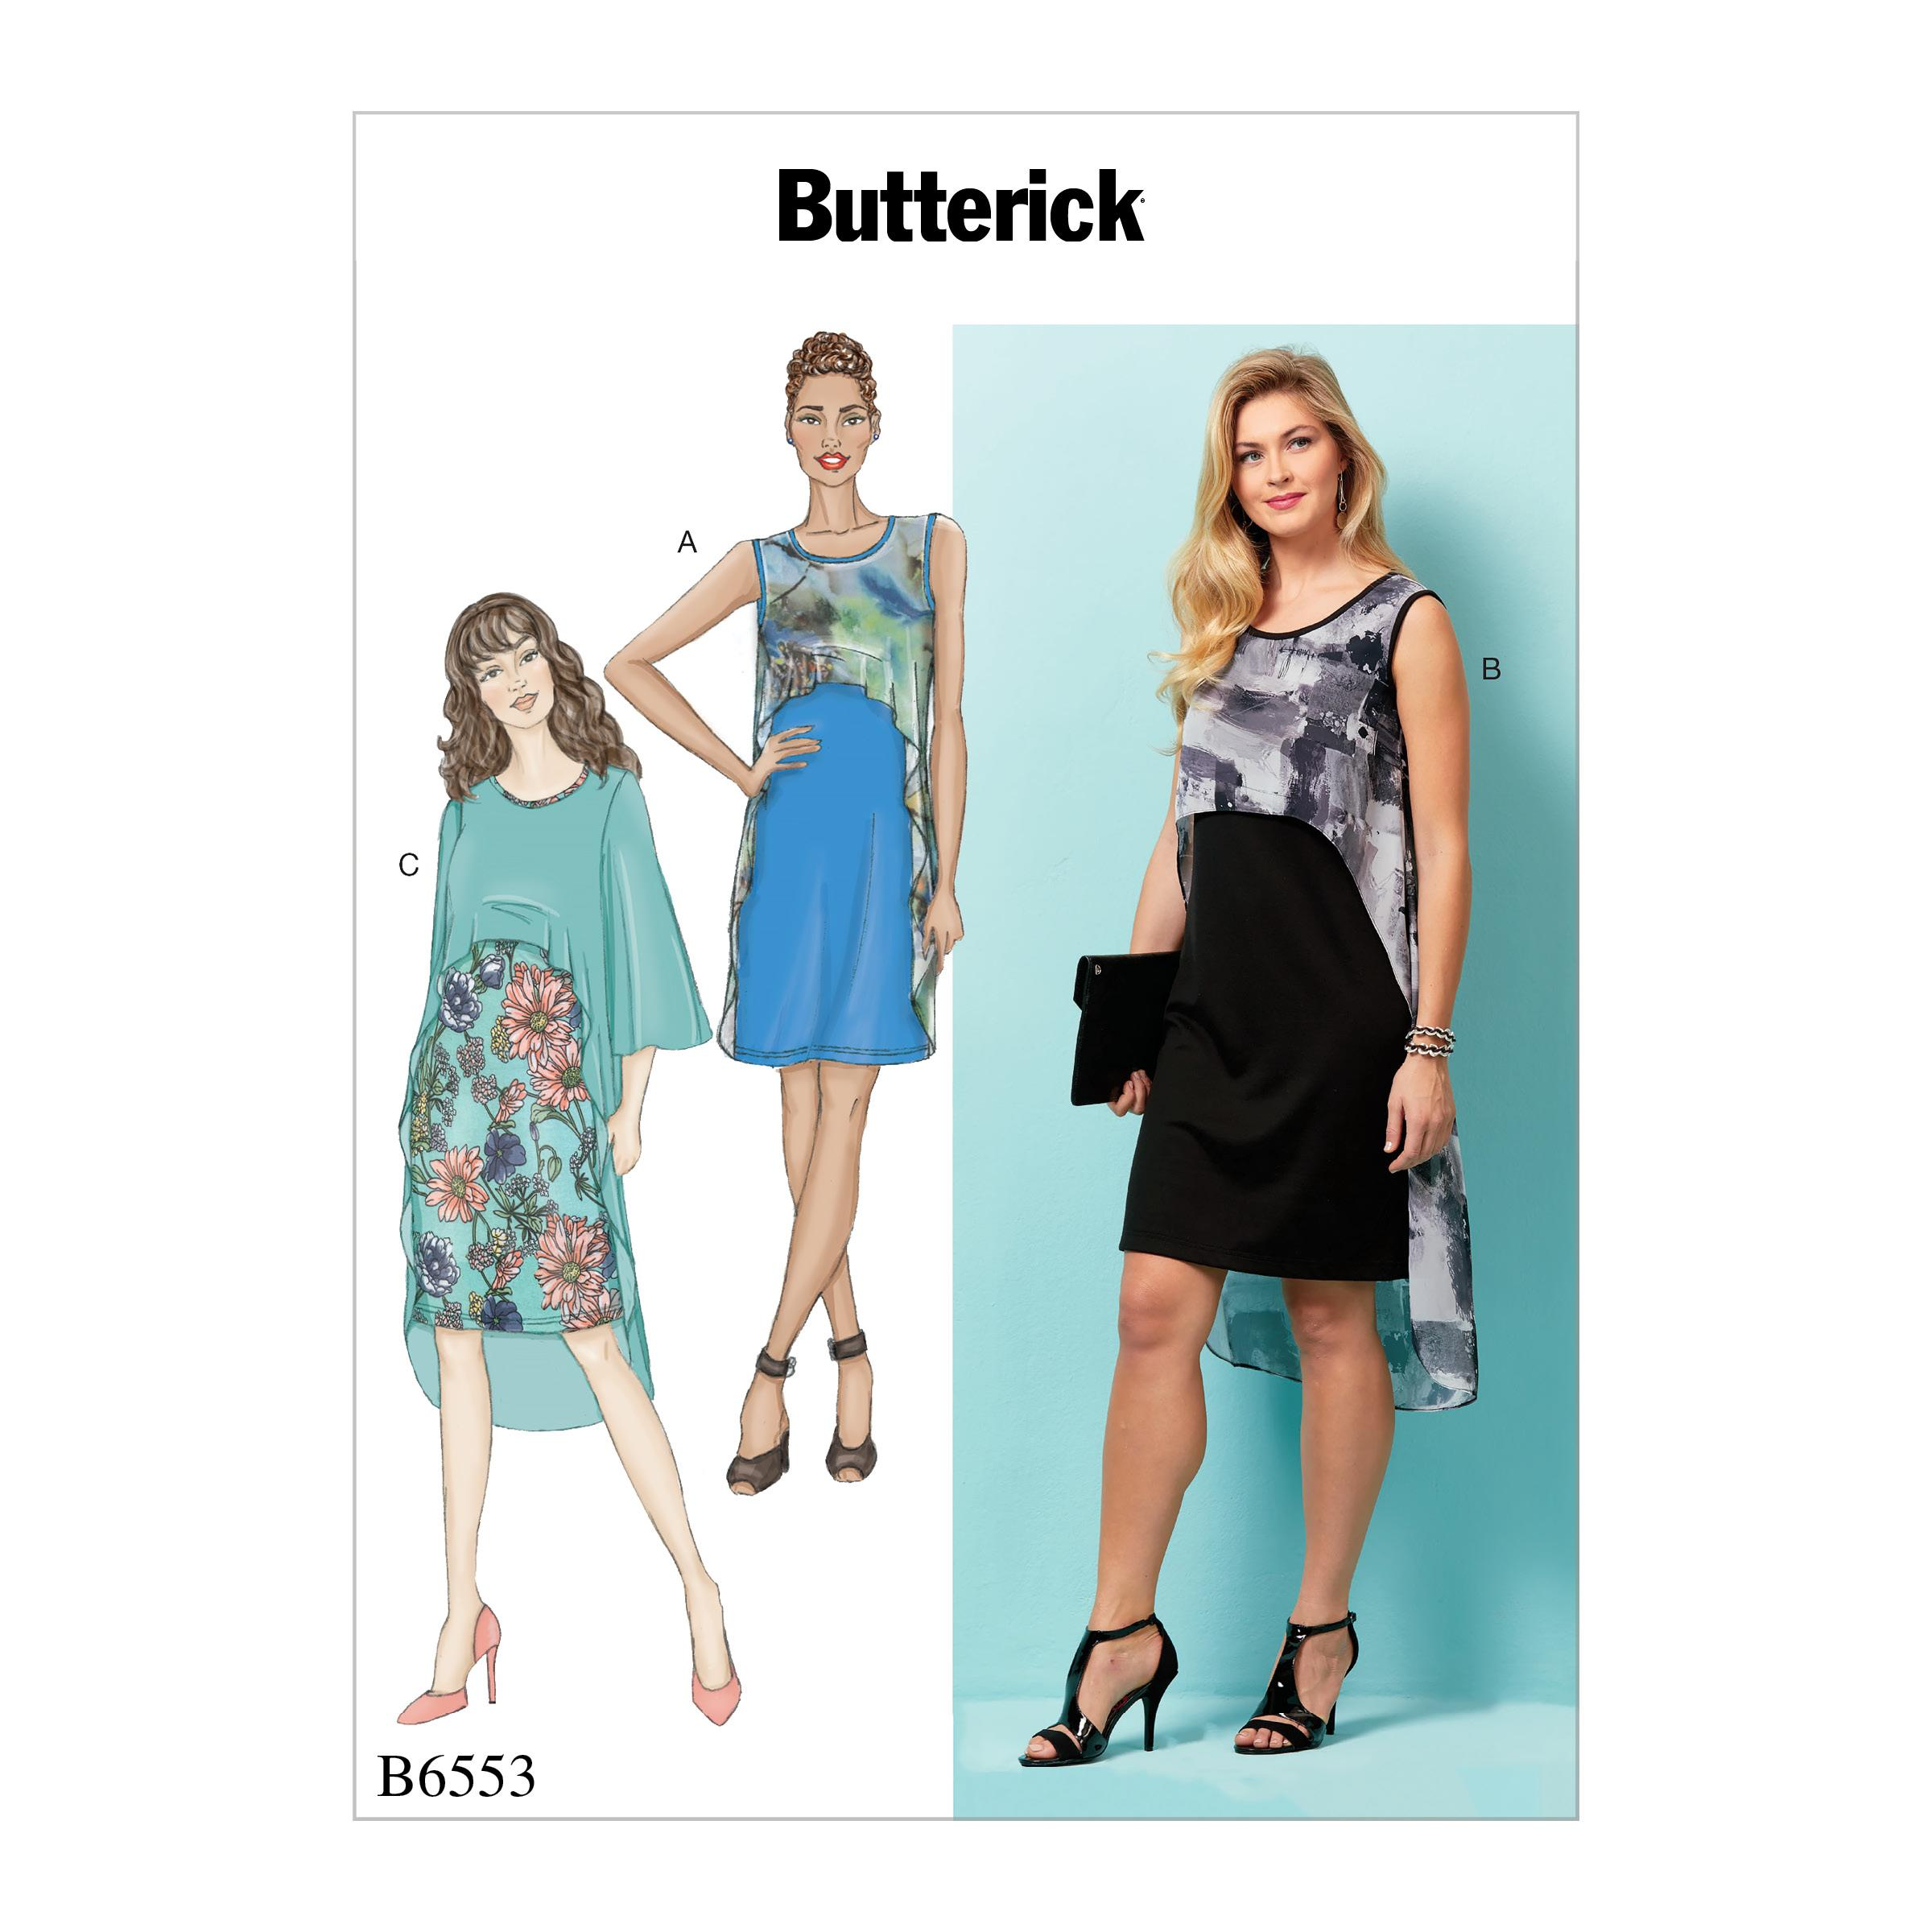 Butterick B6553 Misses' Dress